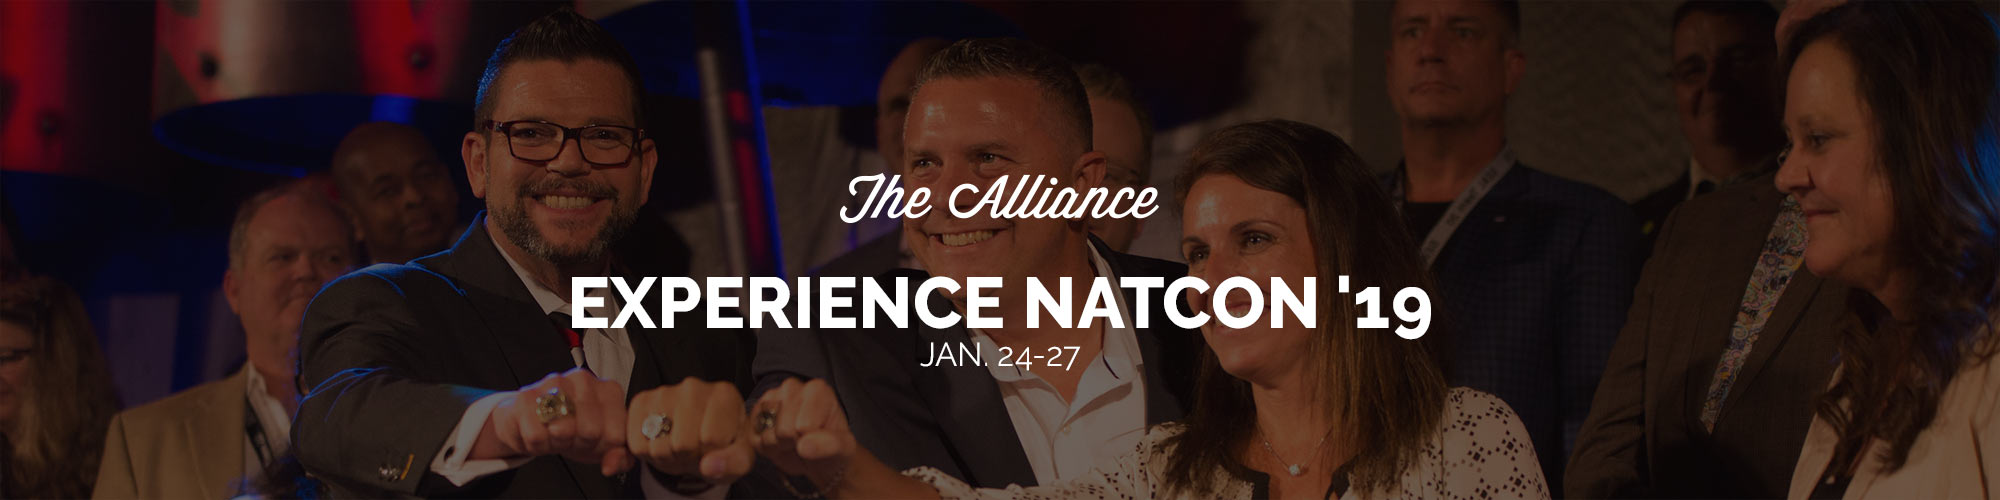 National Convention - January 24, 2019